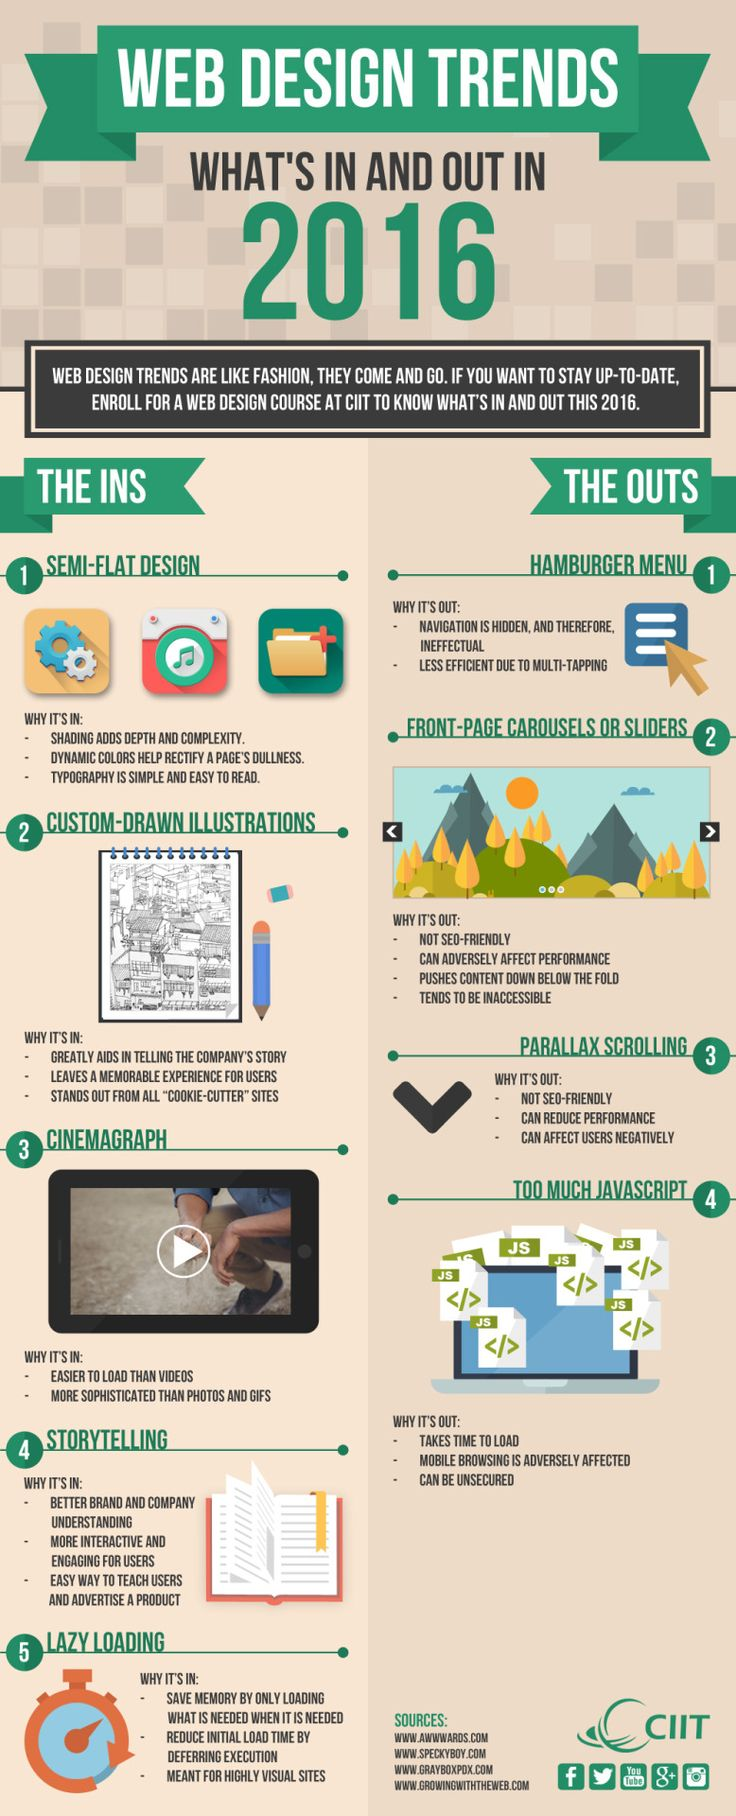 borislavkiprin:  Web Design Trends to Expect This 2016 #Infographic